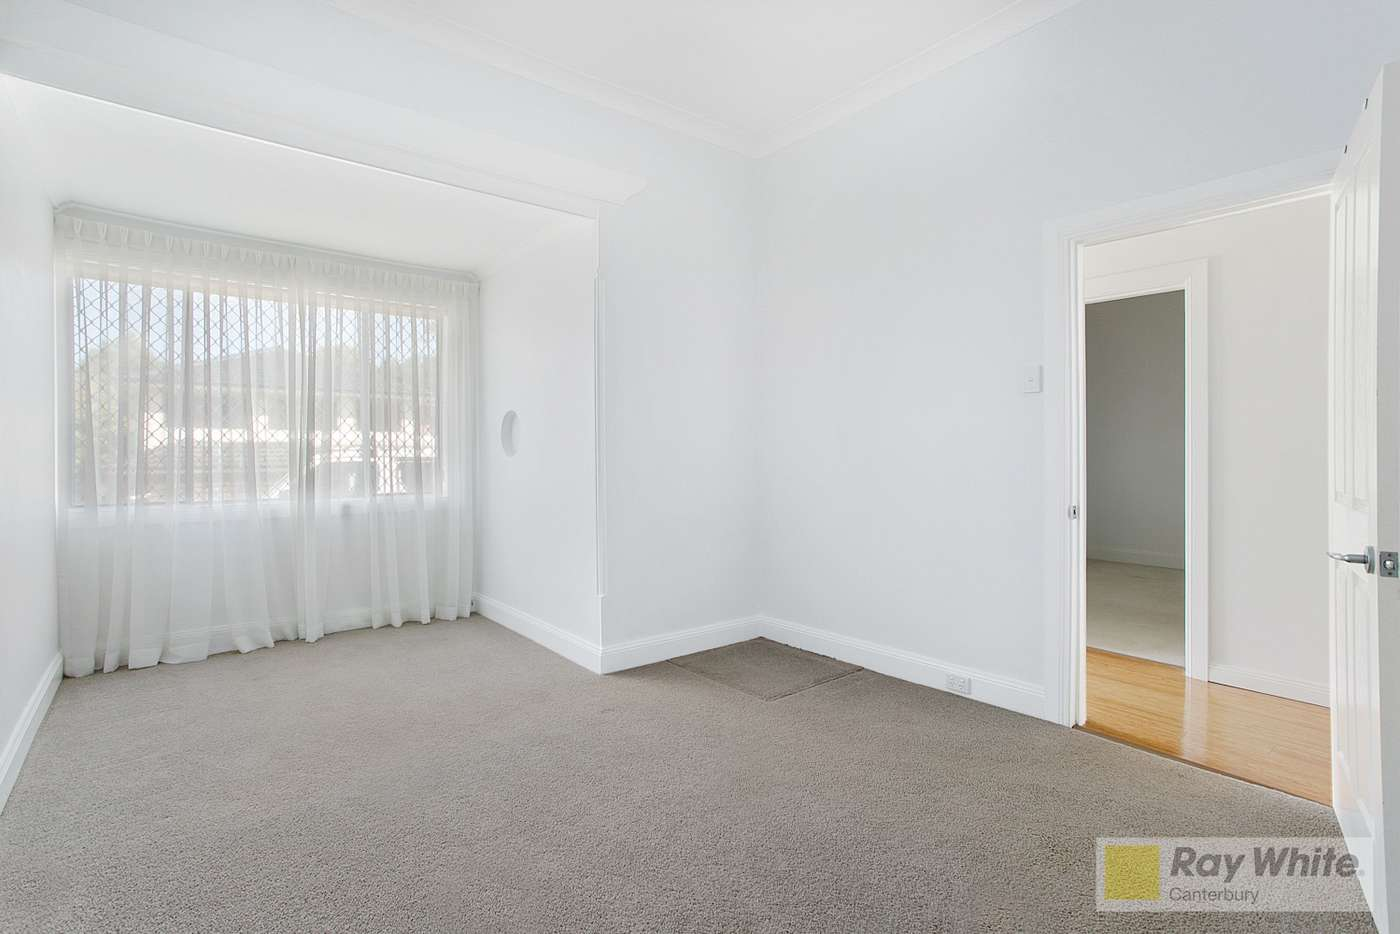 Fifth view of Homely house listing, 3 Tincombe Street, Canterbury NSW 2193